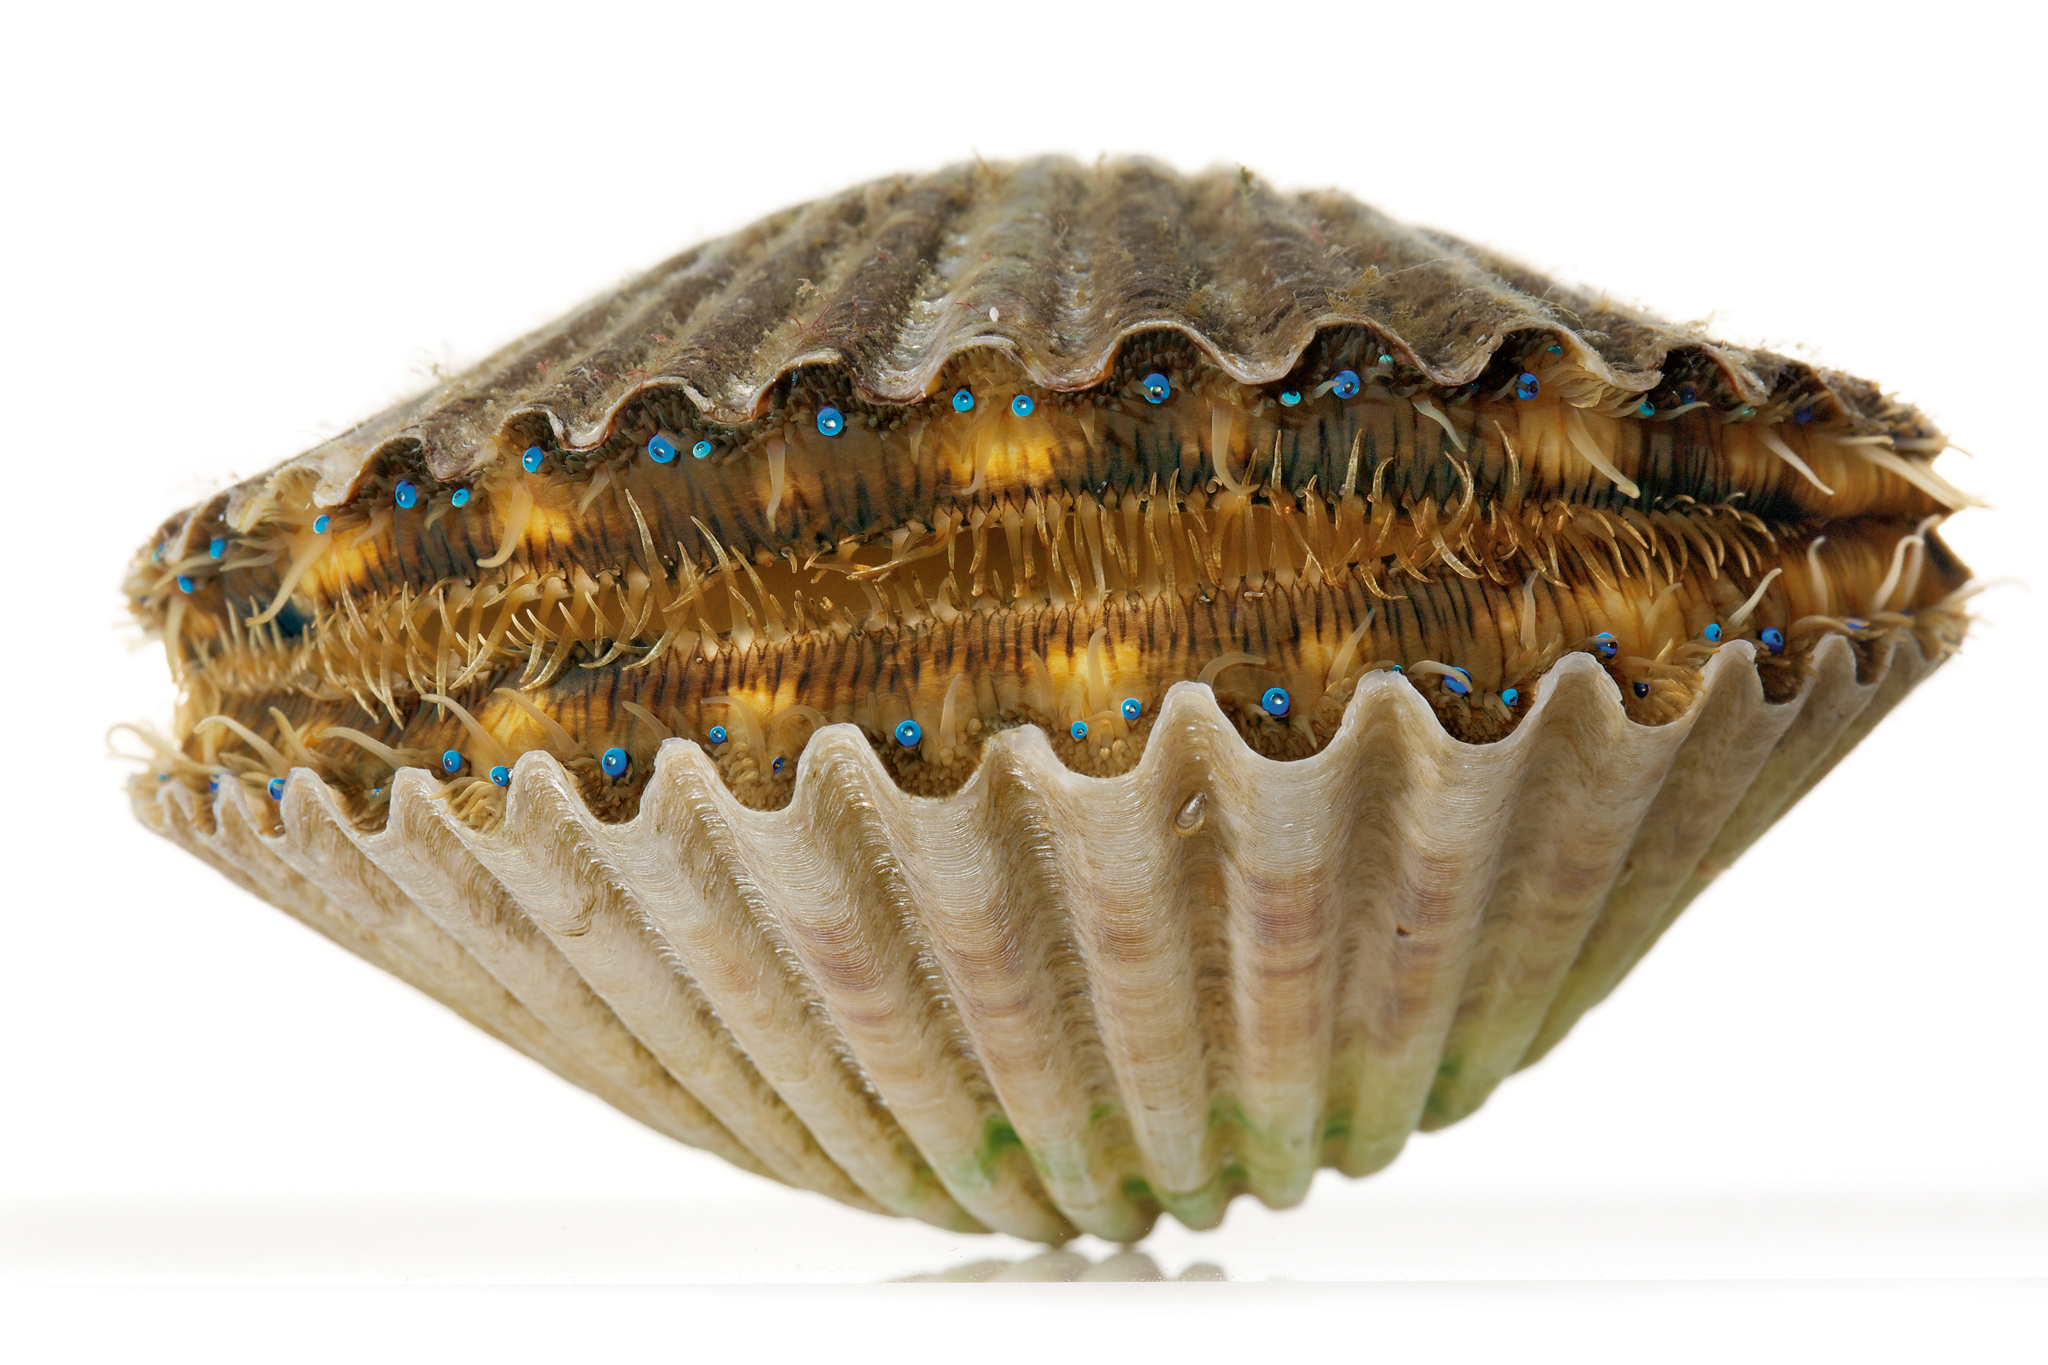 Bay Scallop, Scientific Name: Argopecten irradians